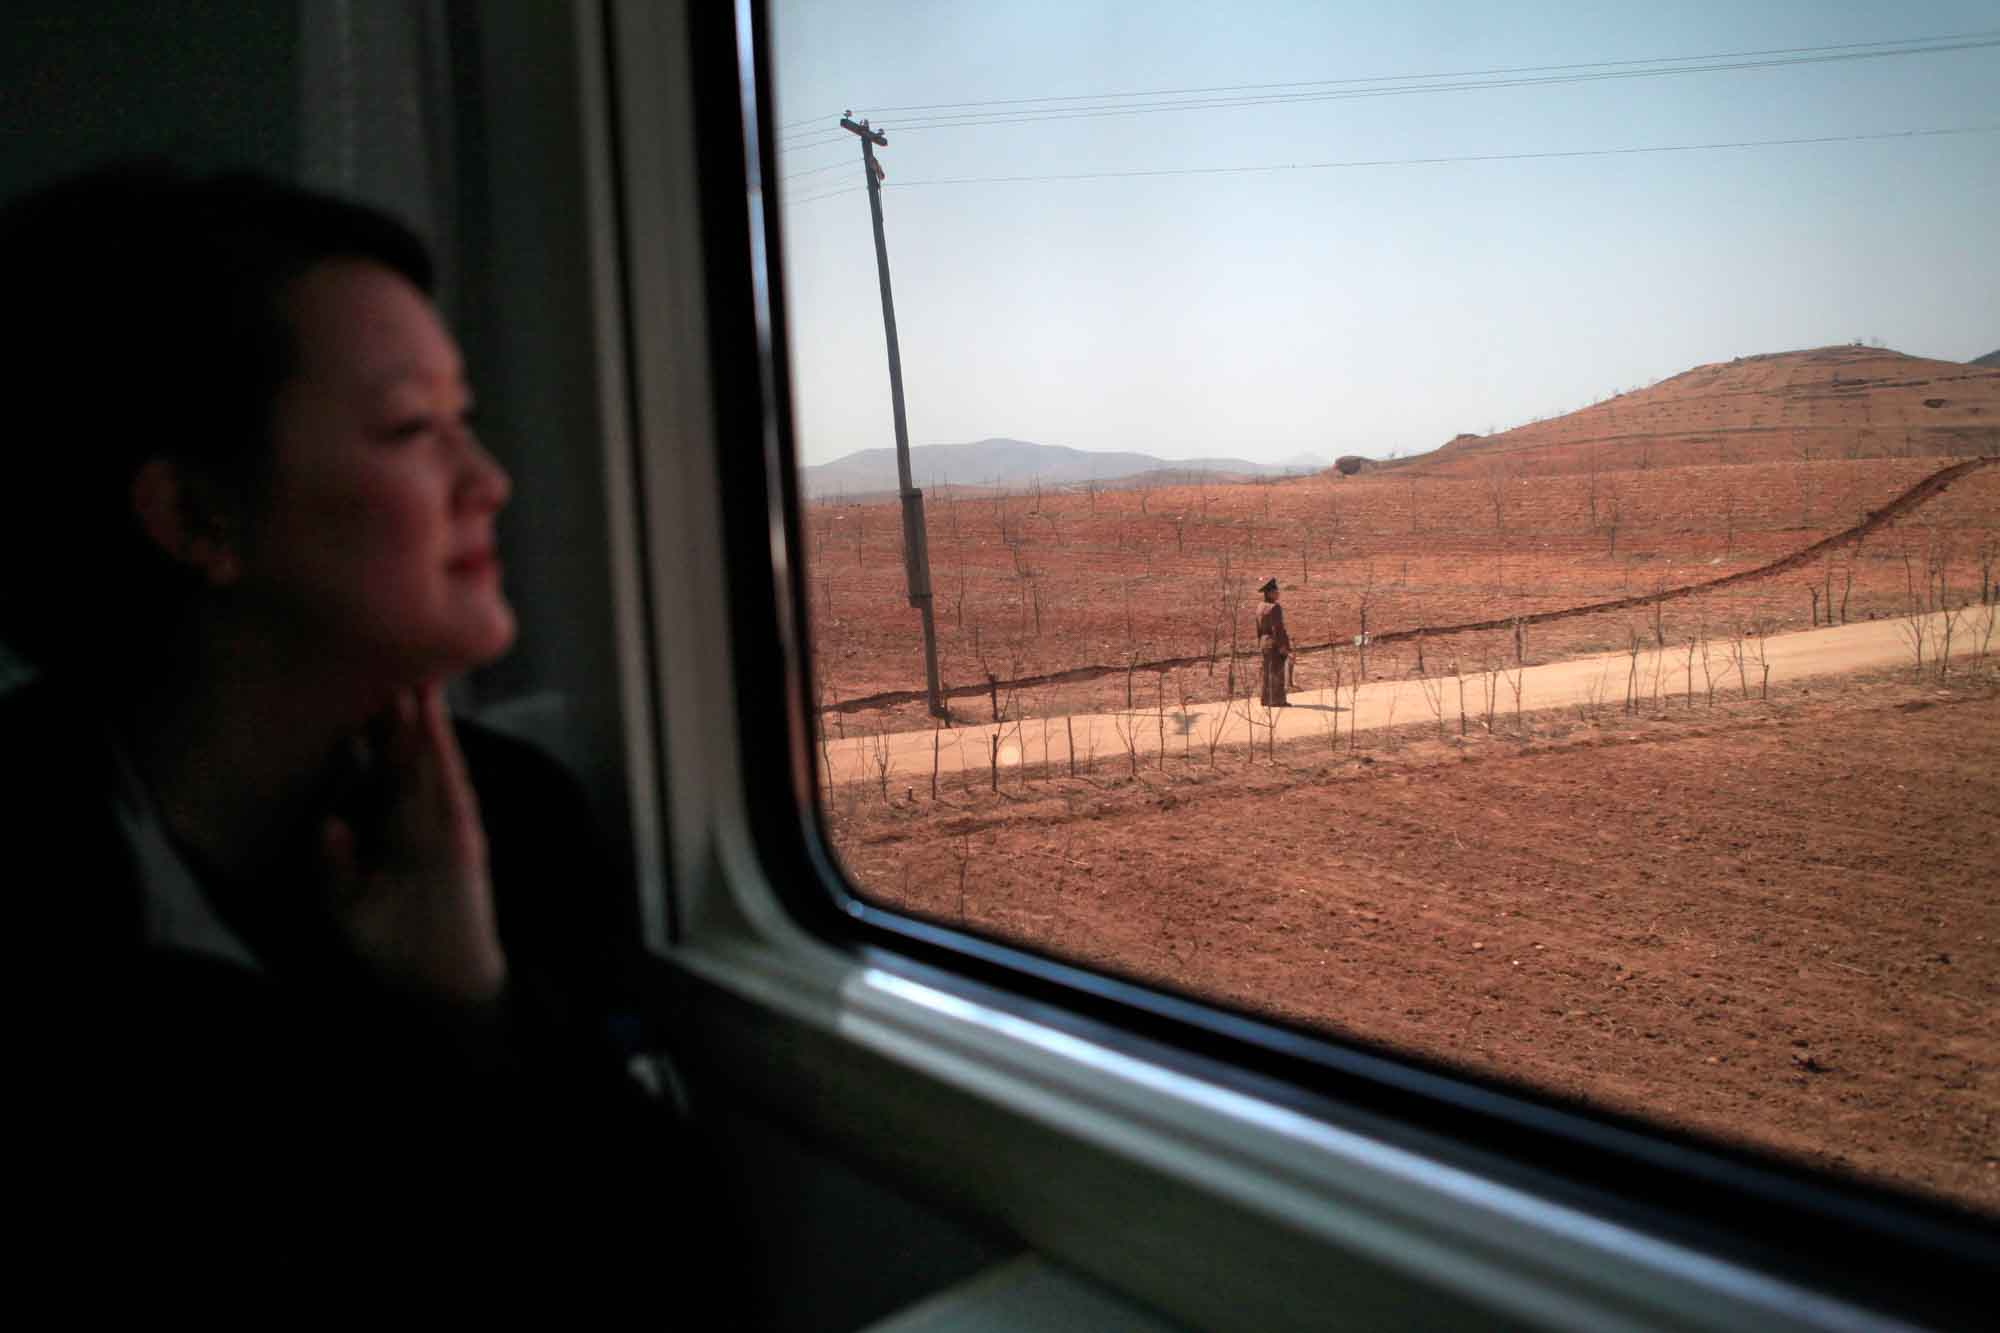 On a train in northwestern North Korea. (Photo by Ng Han Guan,courtesy Jean H. Lee. All Rights Reserved.)